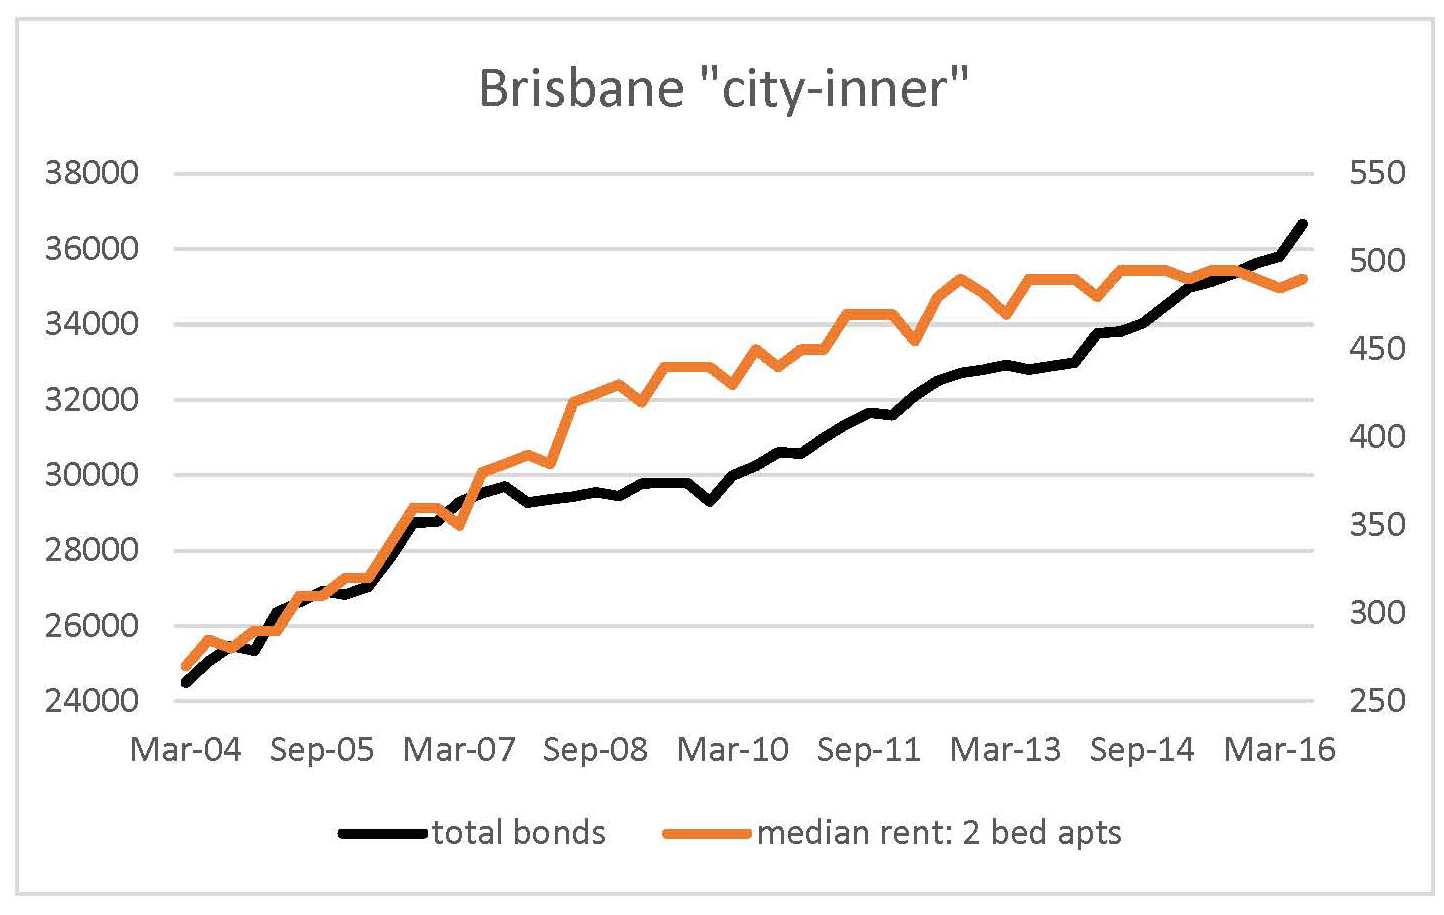 Brisbane rental market